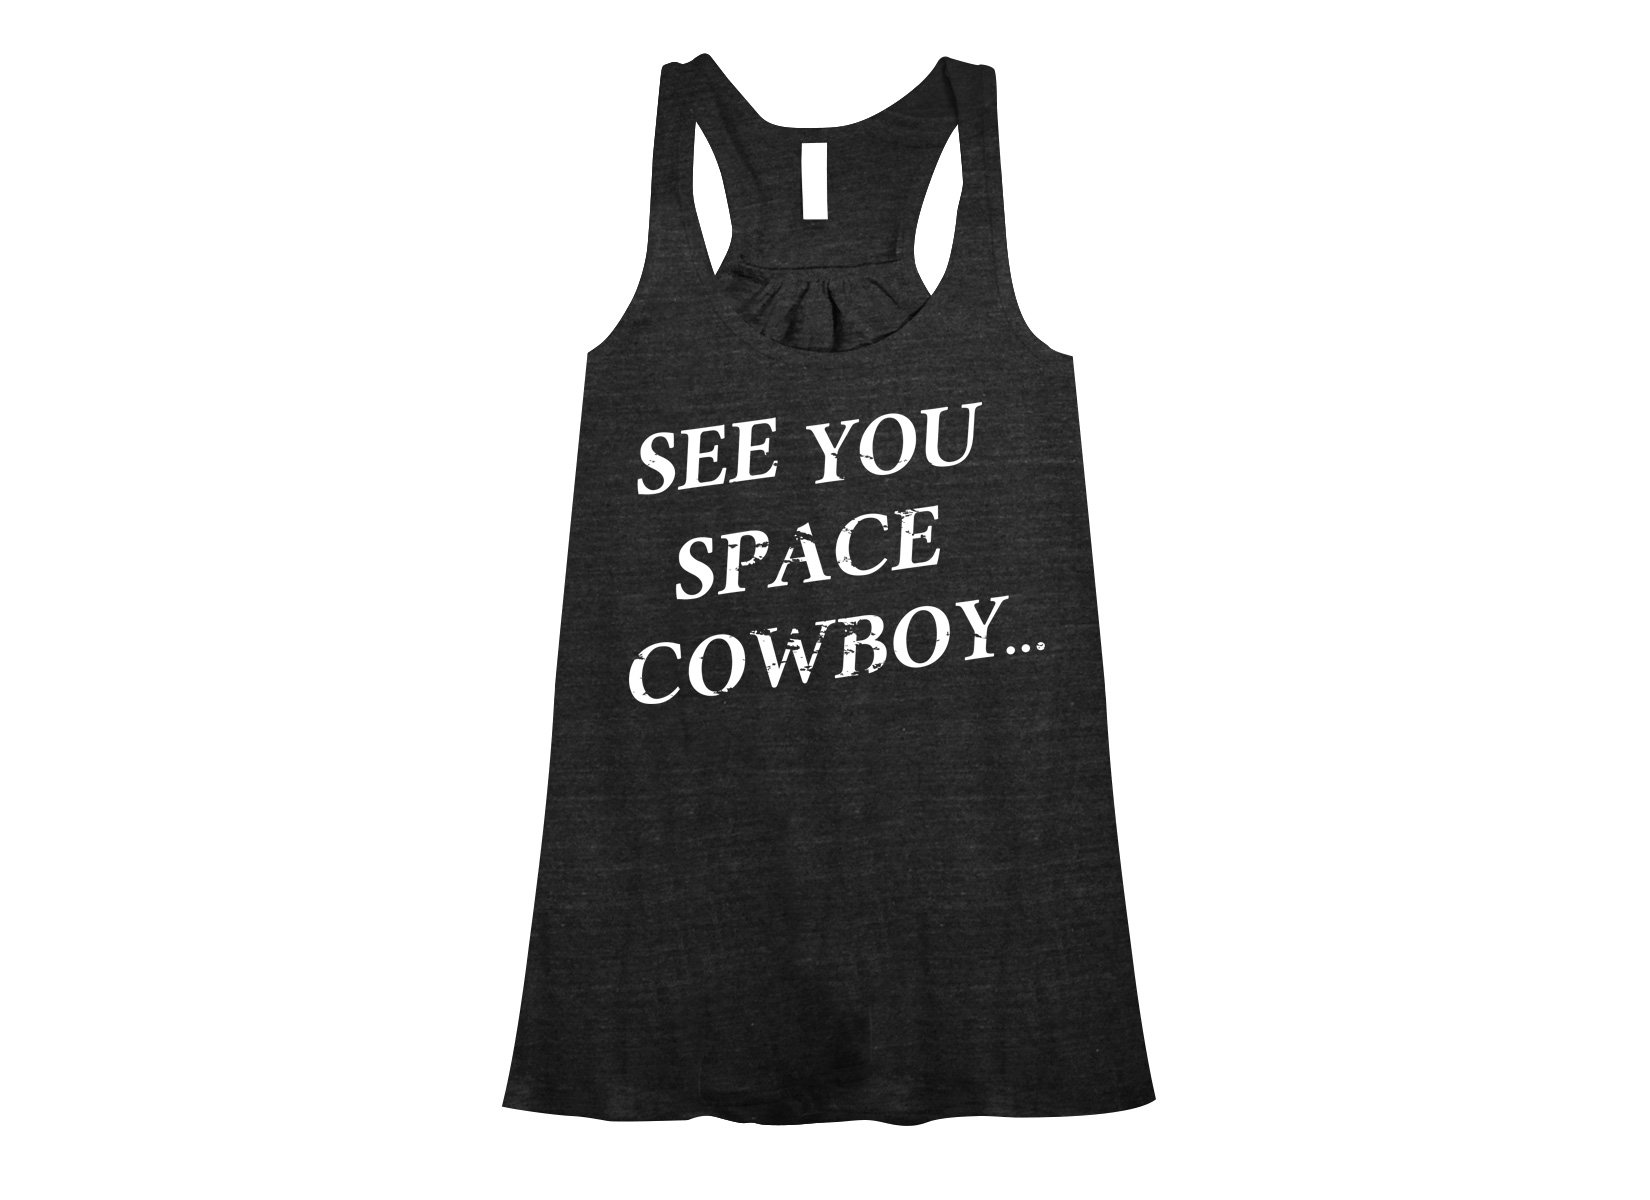 See You Space Cowboy on Womens Tanks T-Shirt